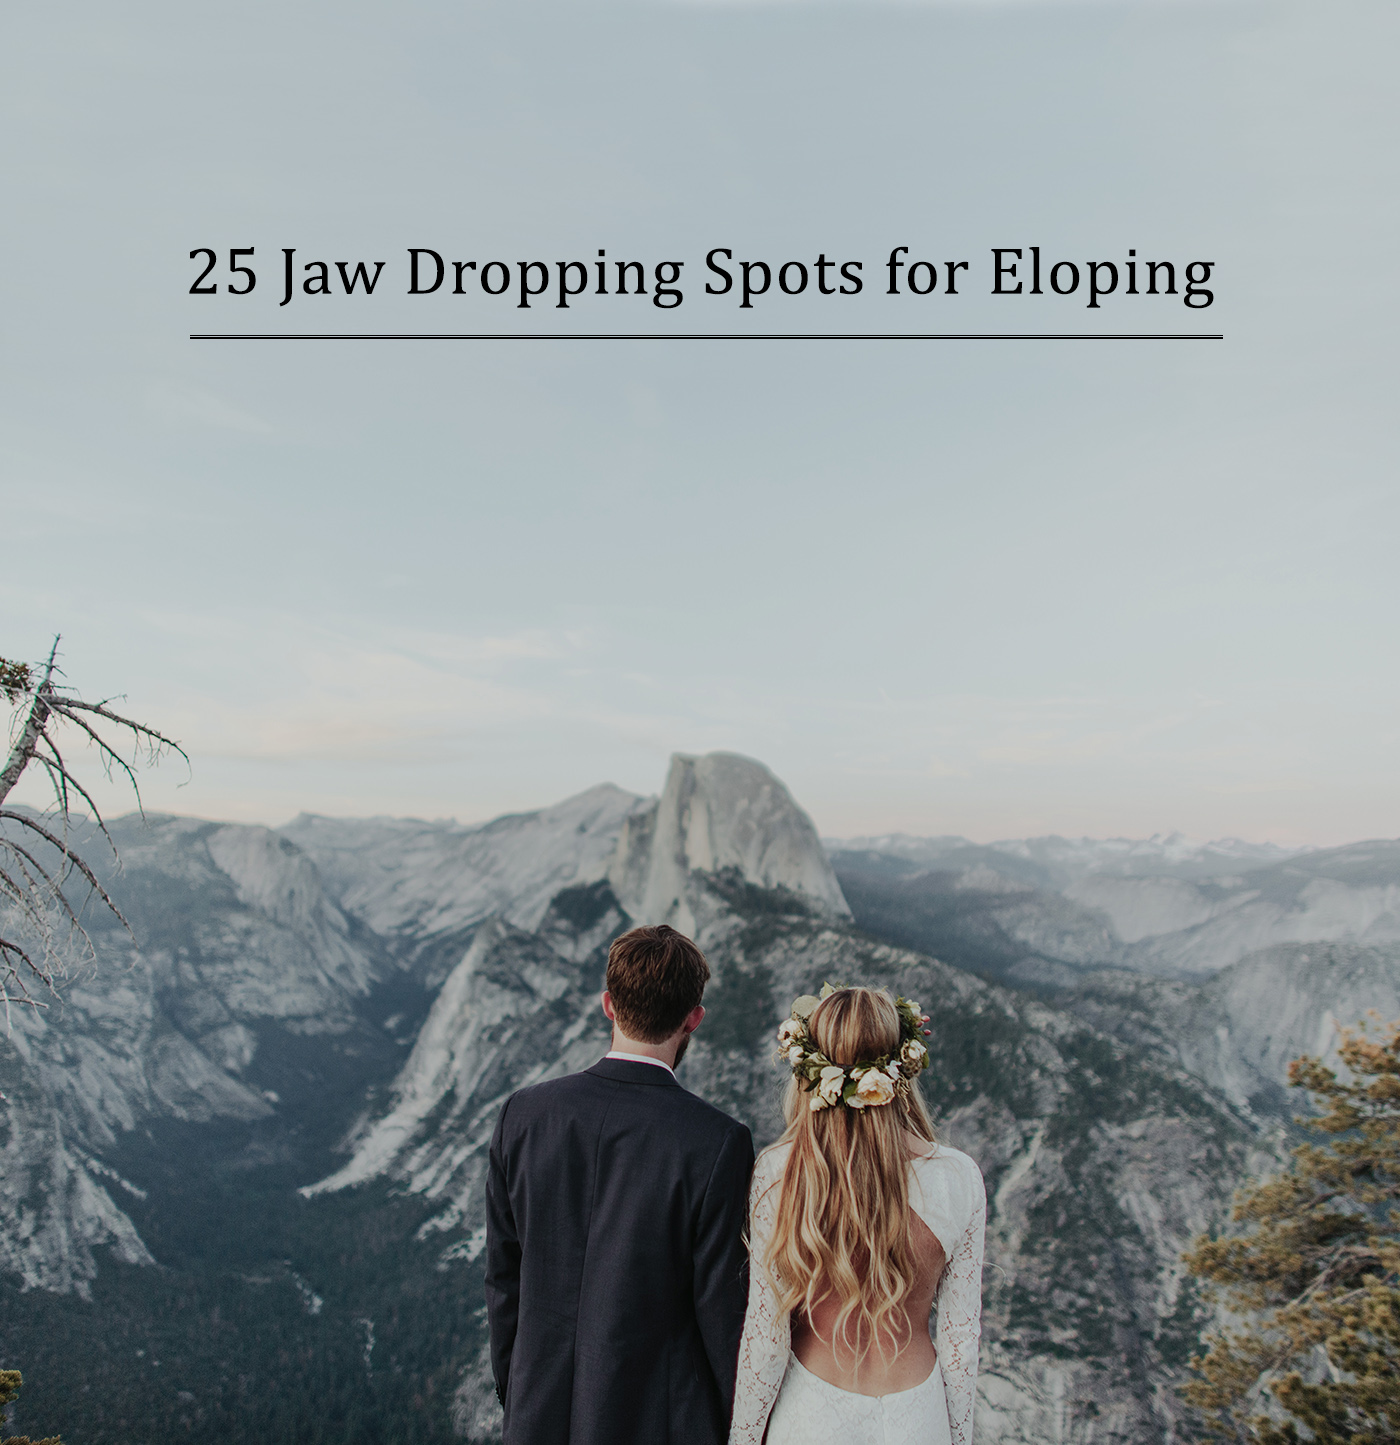 25 Jaw Dropping Spots to Elope for Your Wedding